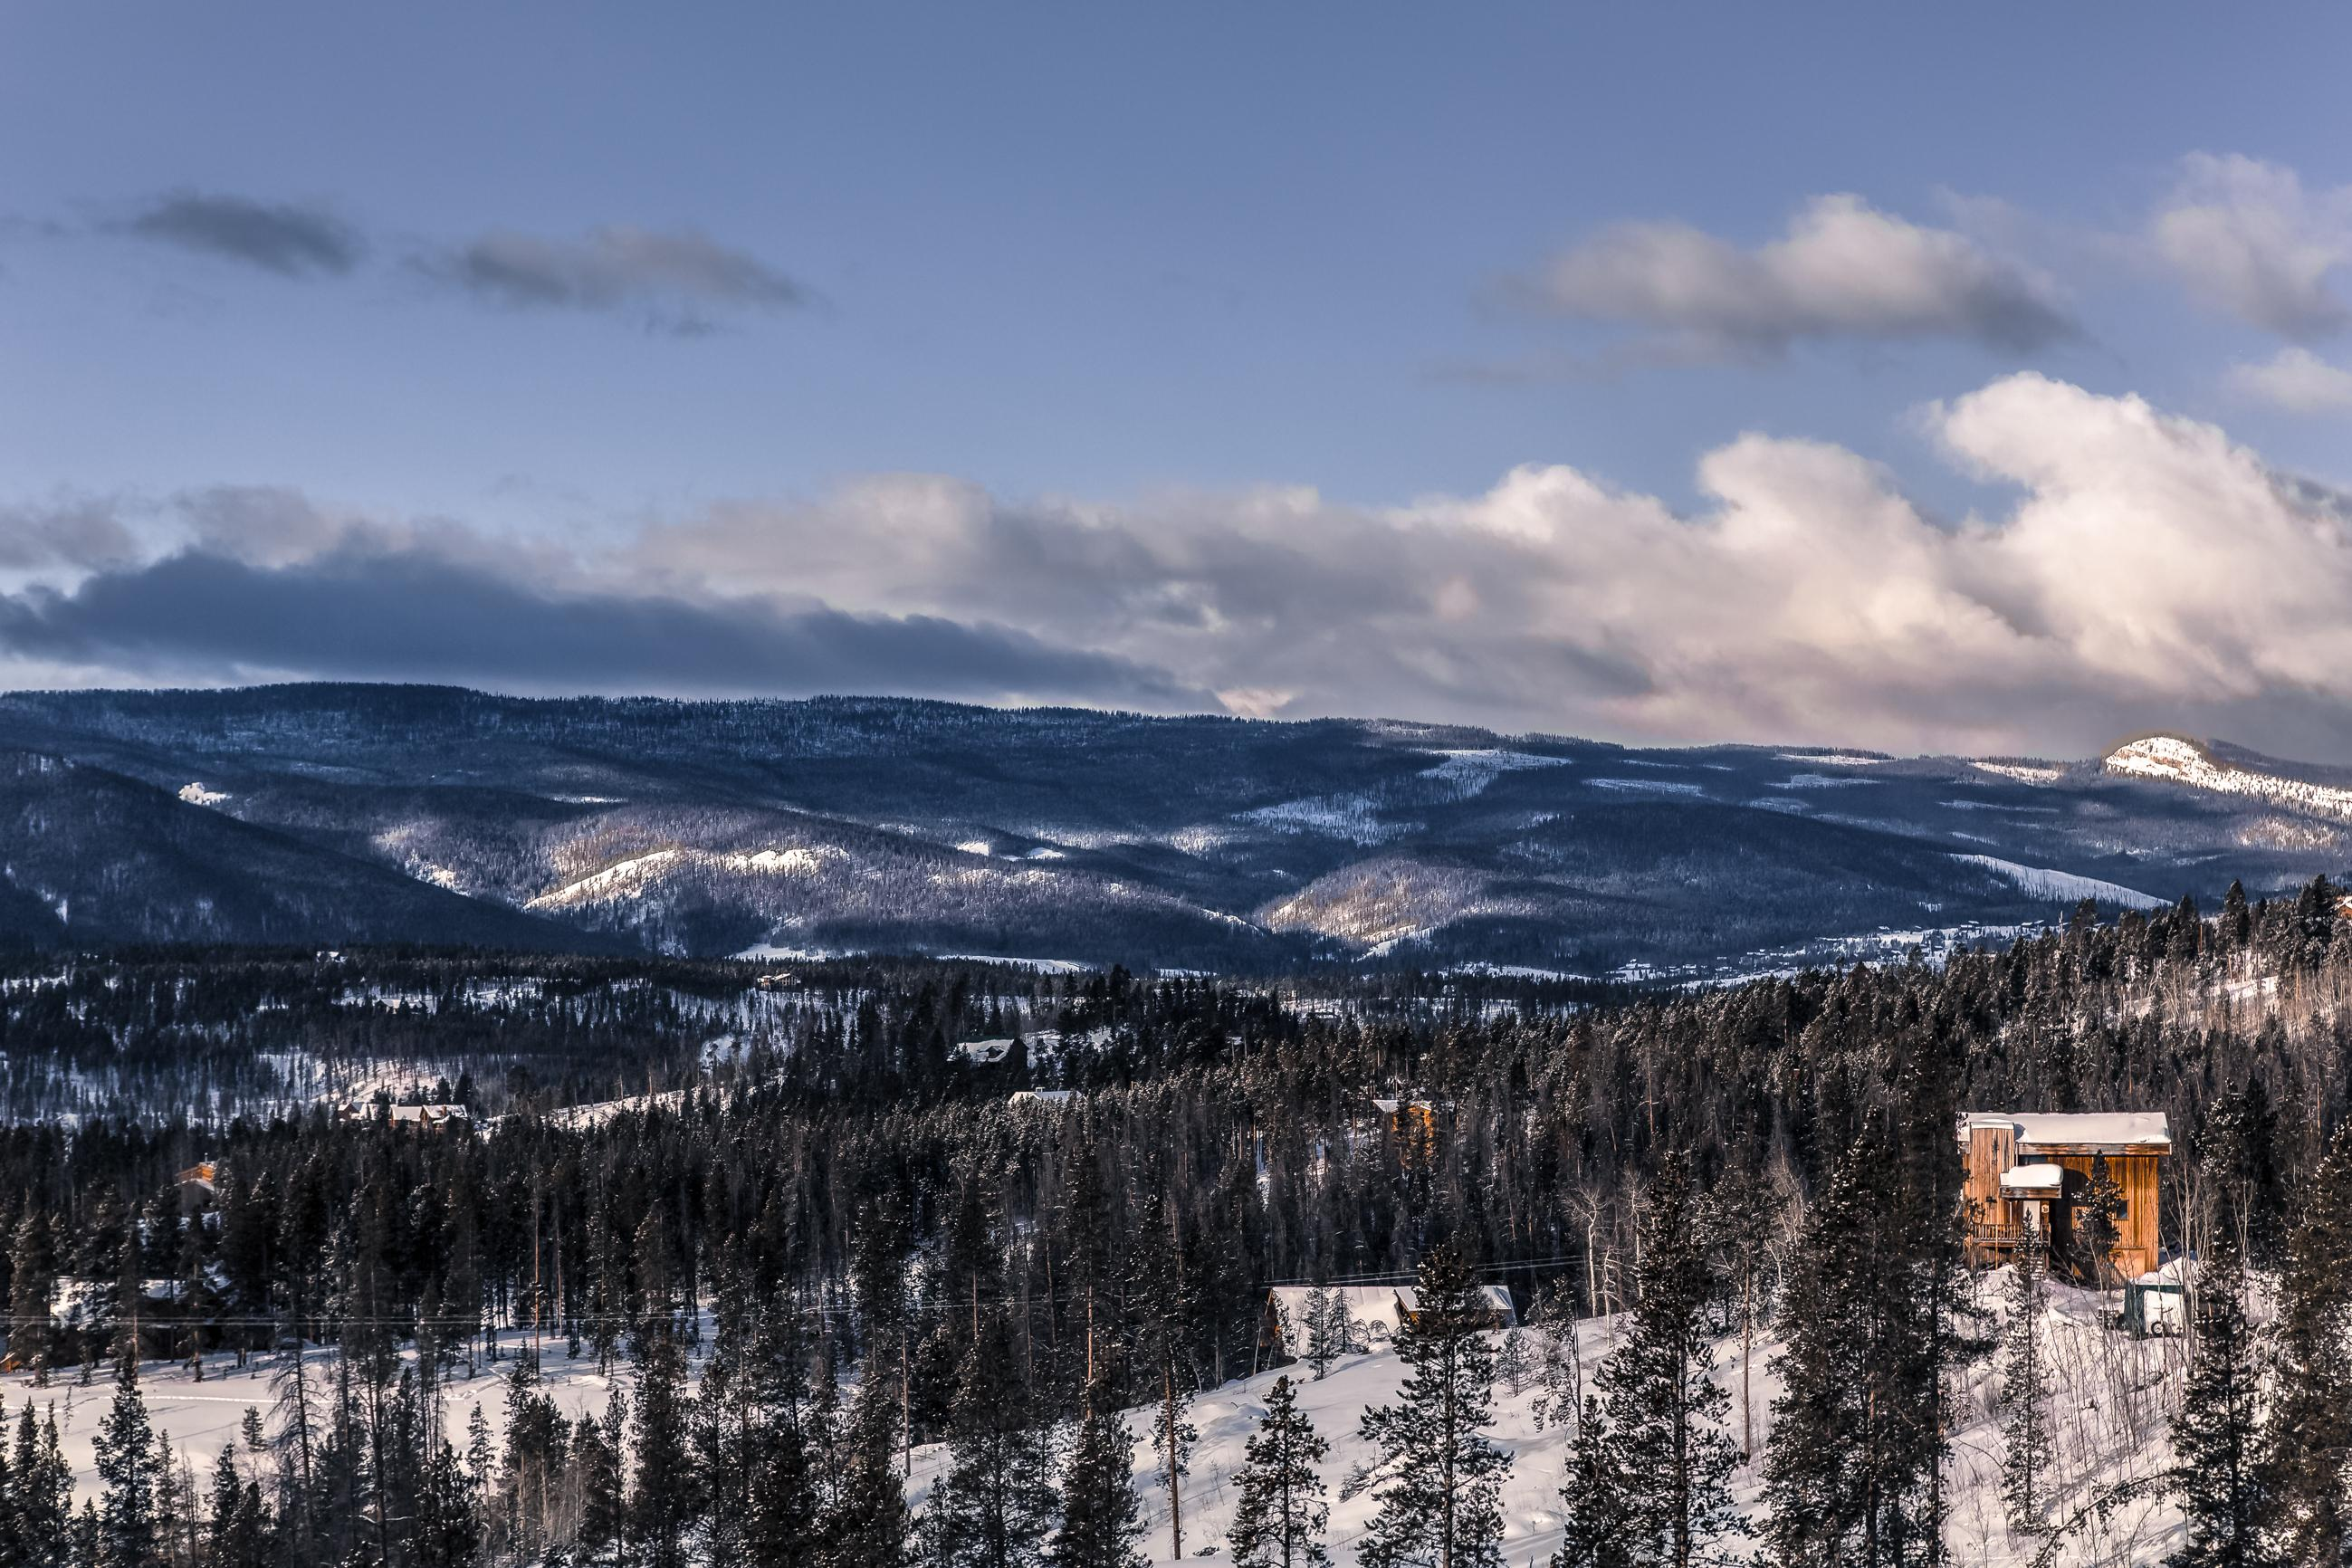 Enjoy easy access to Winter Park Resort with The Lift -- the city's free shuttle, with a stop just across the street.